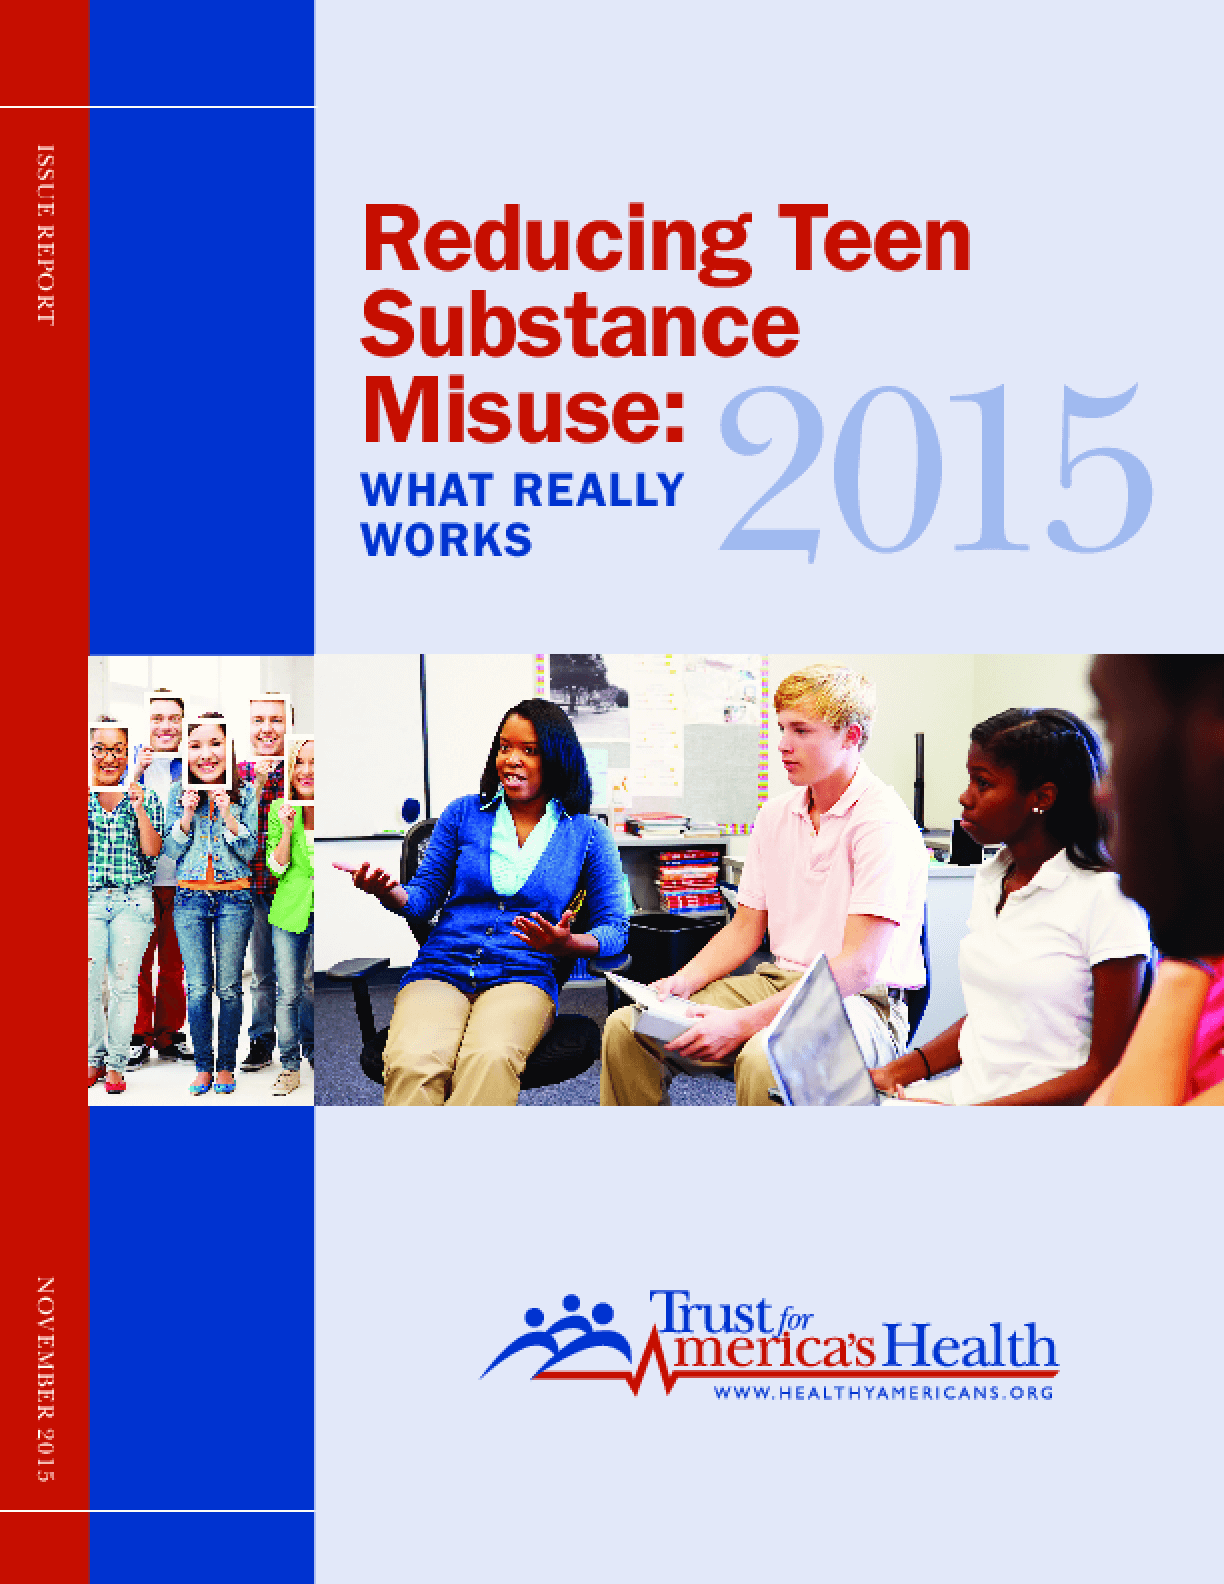 Reducing Teen Substance Misuse: What Really Works 2015